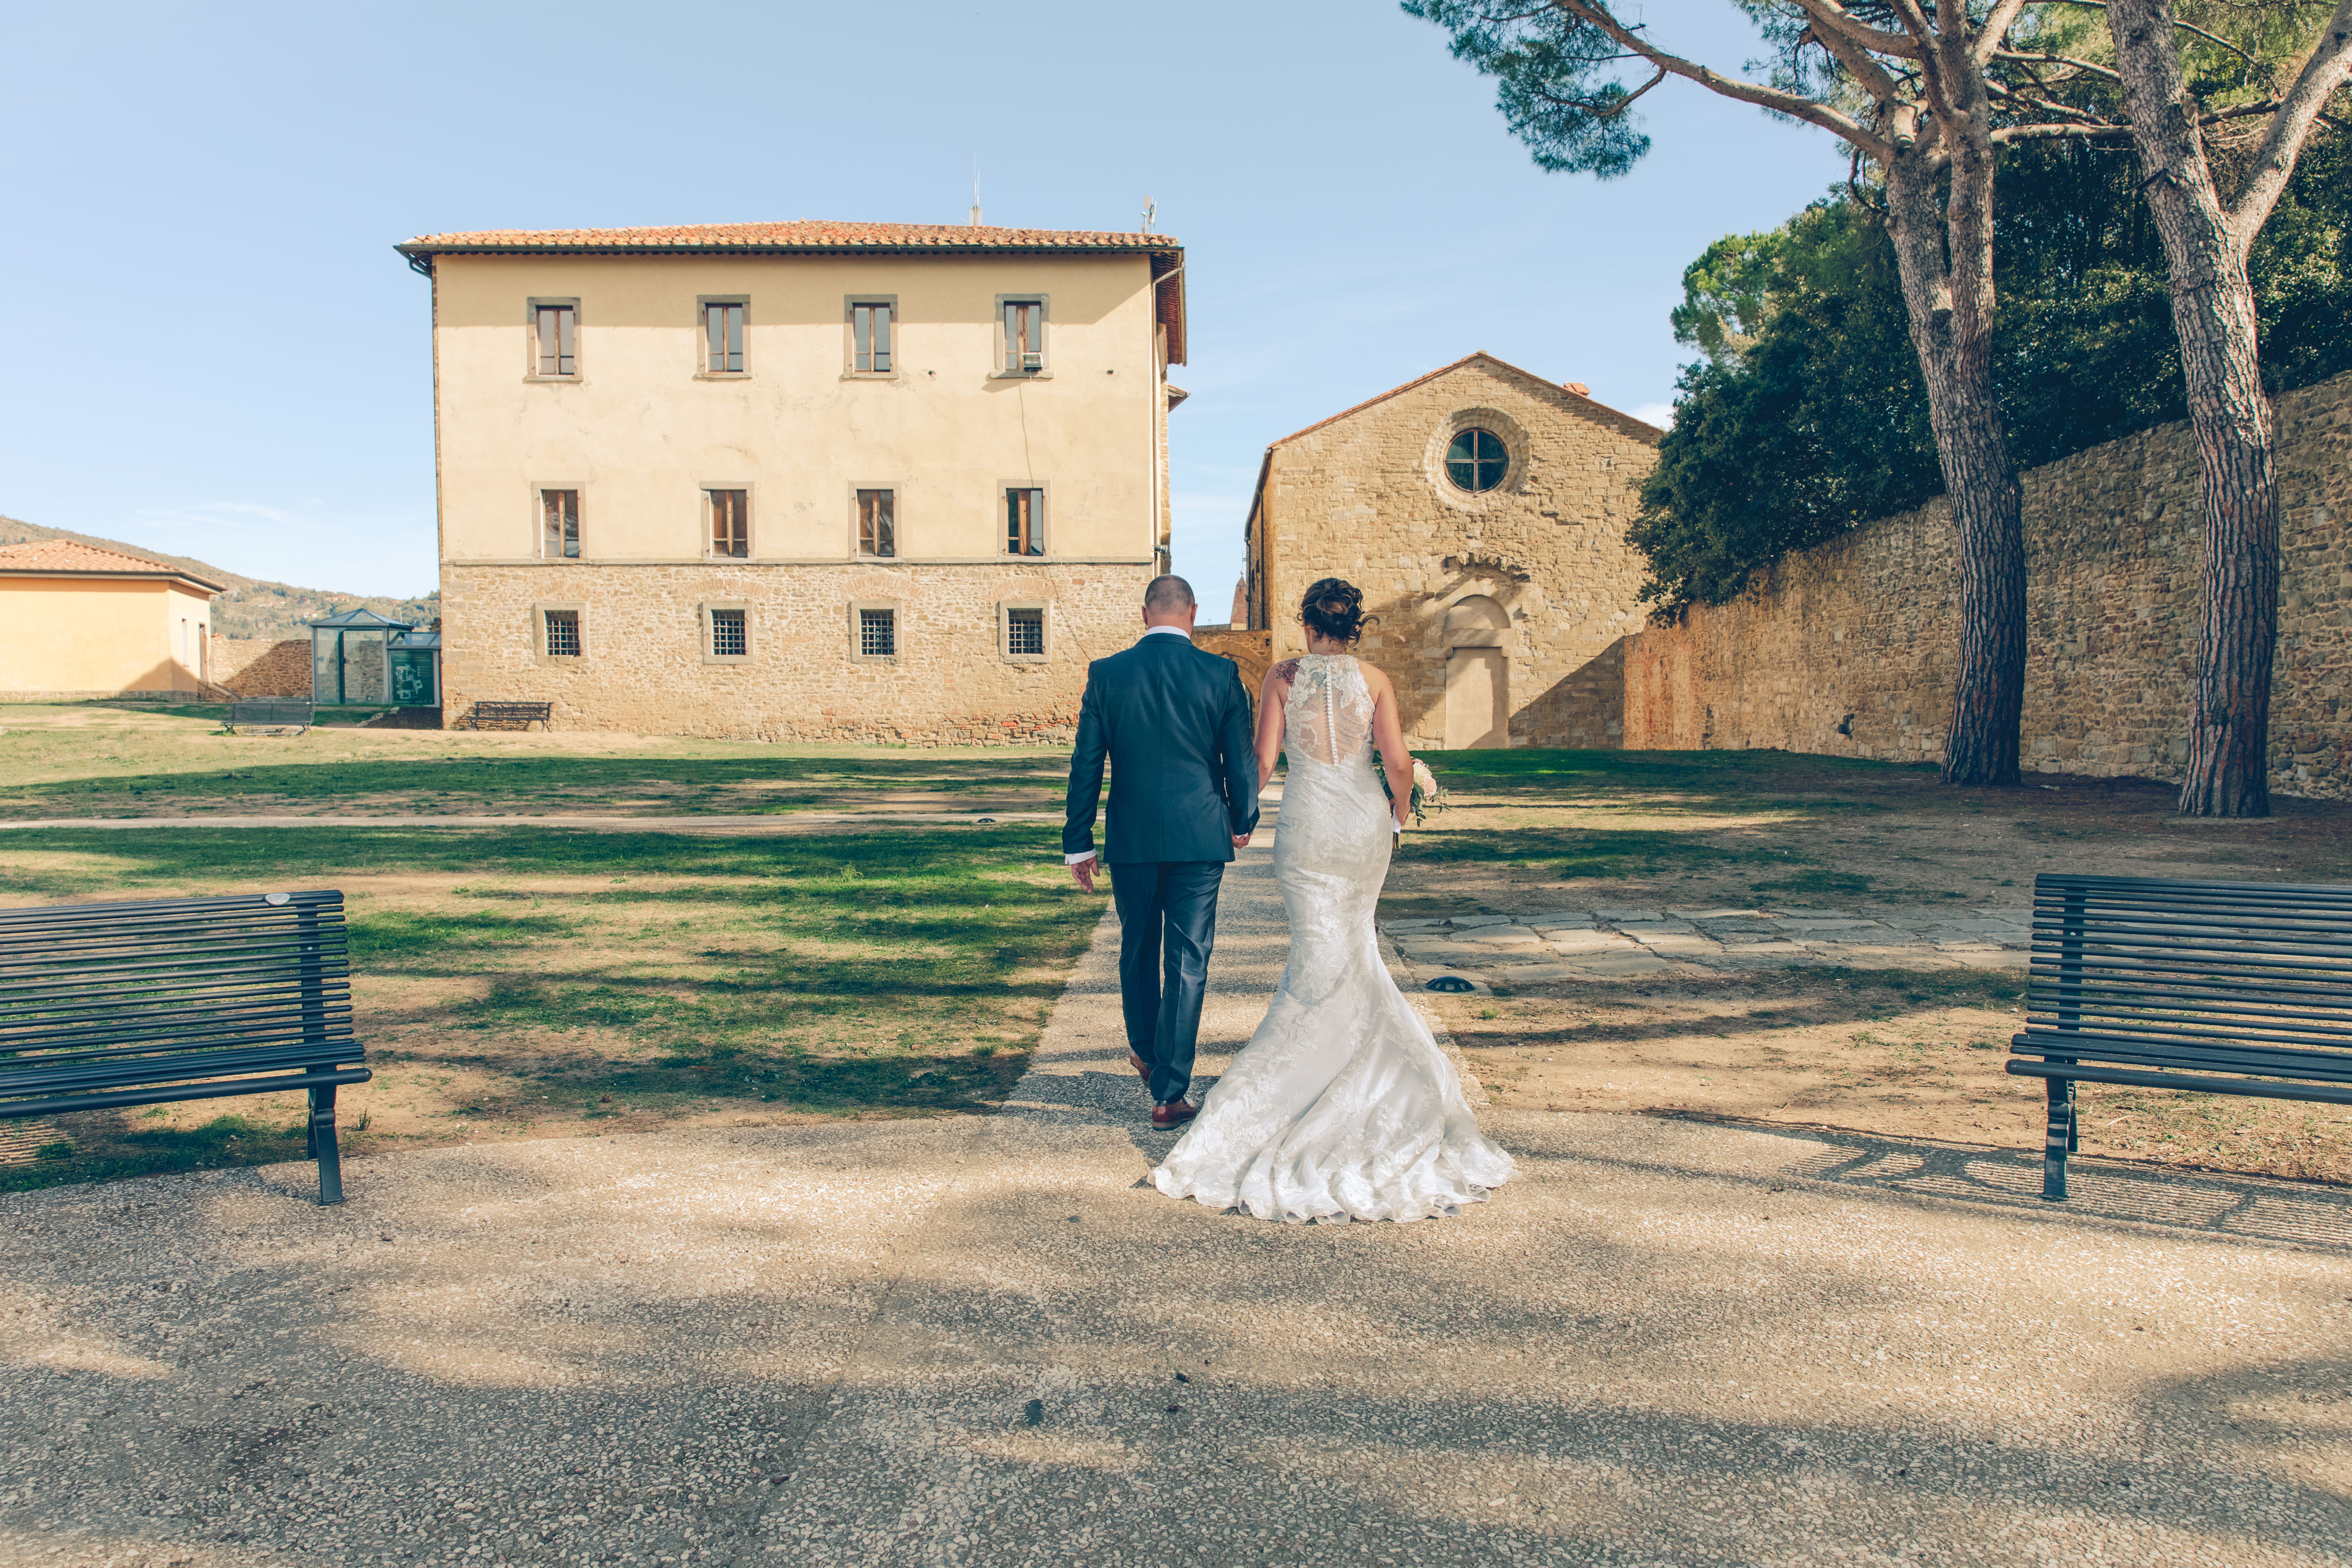 Naimisiin Italiassa. Foto: Wedding Movie